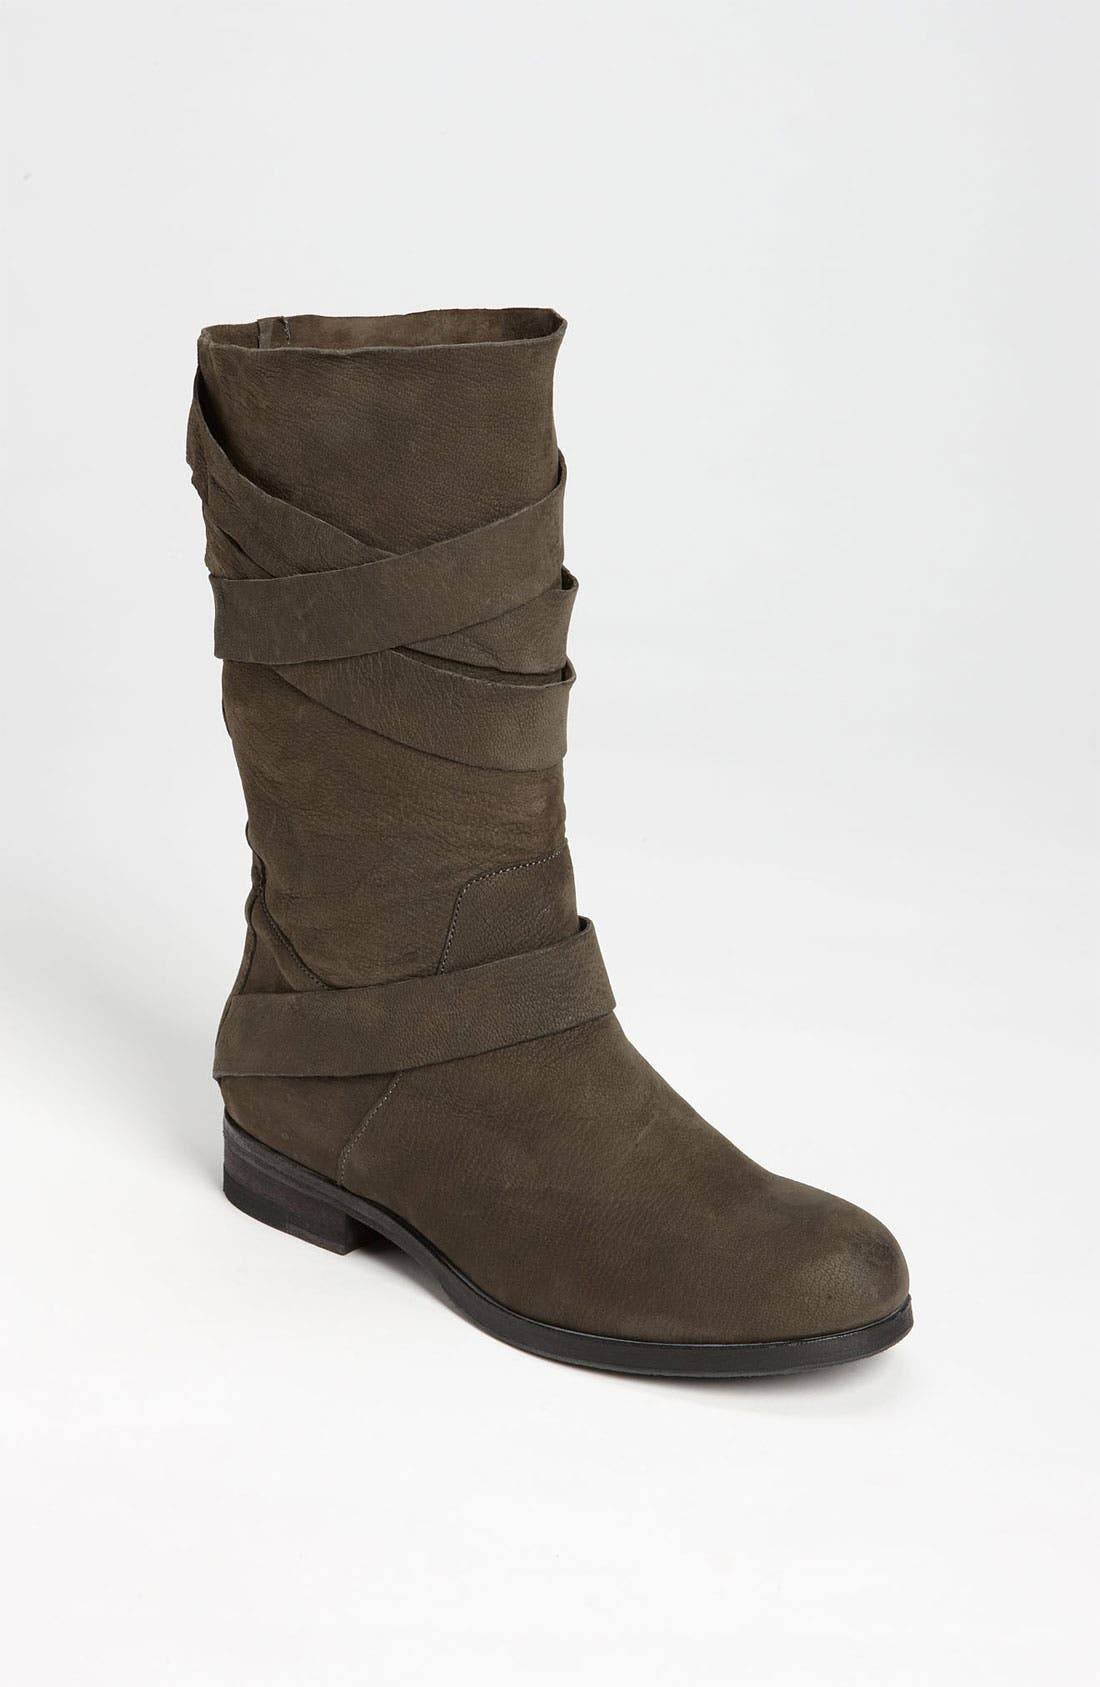 Alternate Image 1 Selected - Eileen Fisher 'Many' Boot